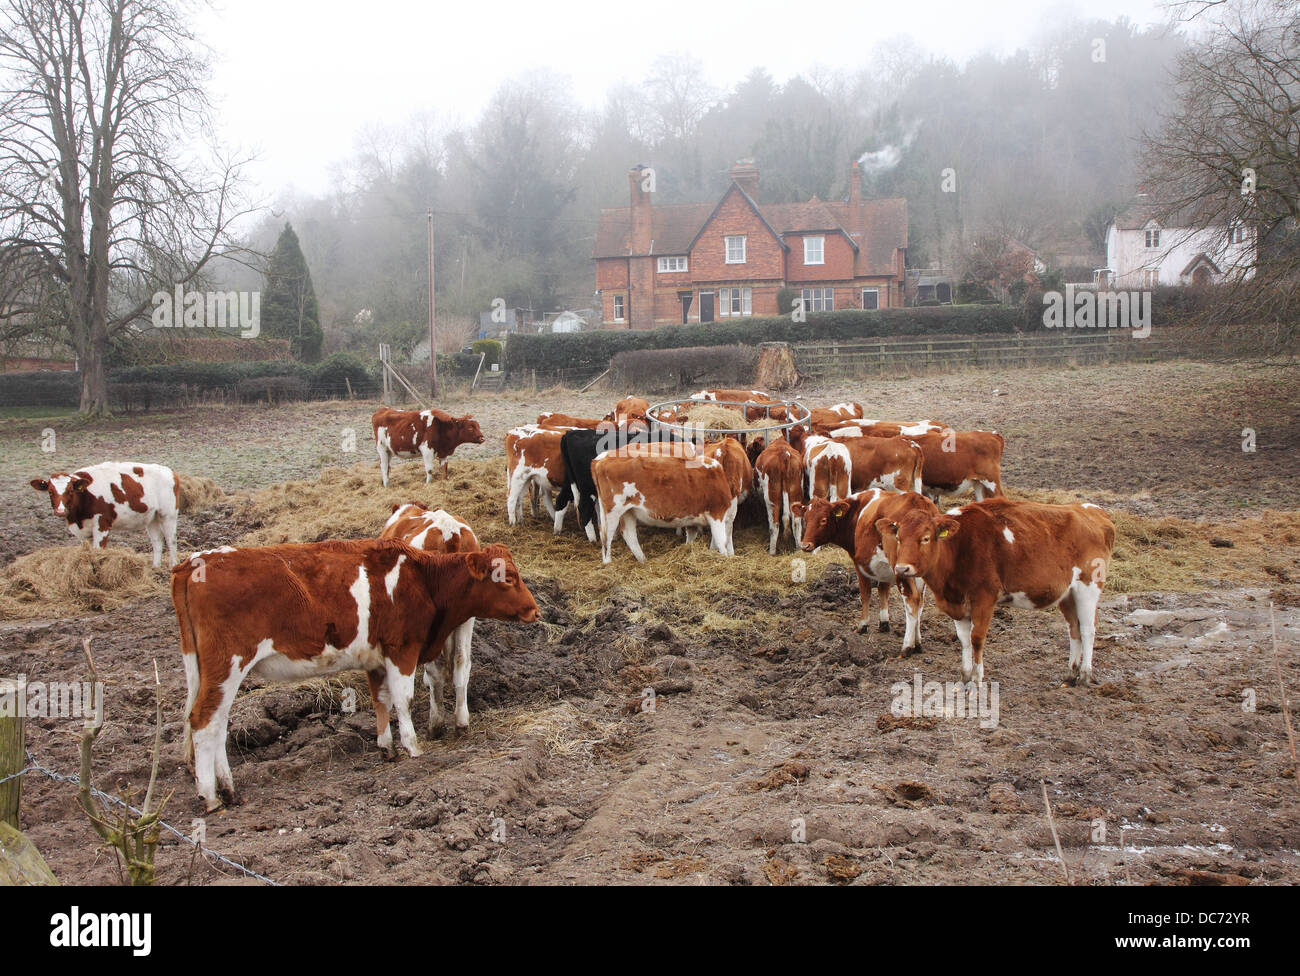 Rural scene of Cattle feeding on Winter Hay in a Muddy field in England - Stock Image